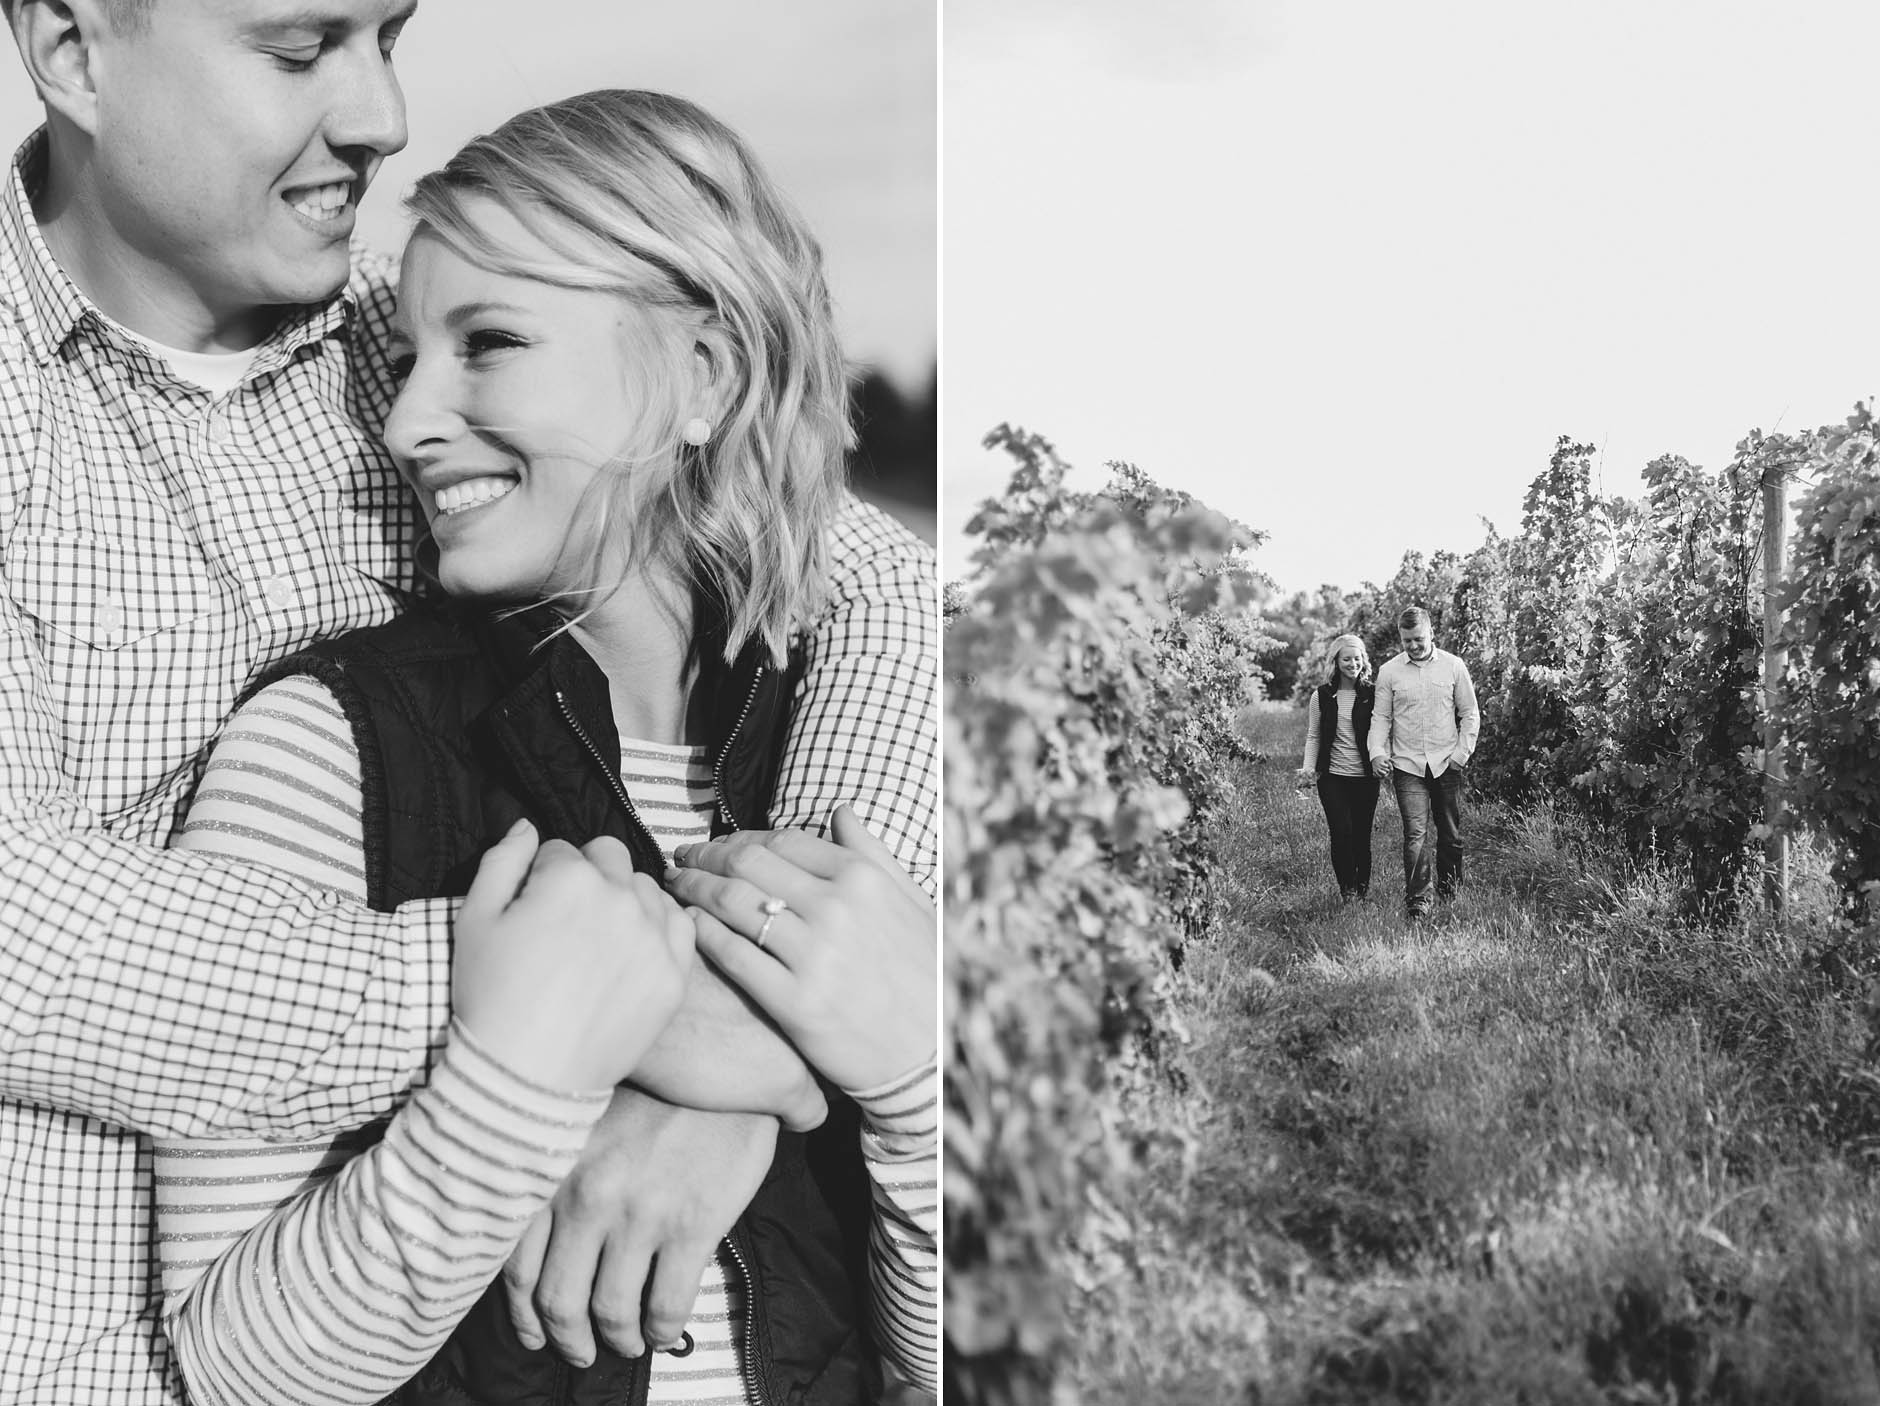 A fall engagement session at South River Vineyard in Geneva and Geneva on the Lake with Rachel & Caleb. All photos created by Maria Sharp Photography. To view more please visit, www.mariacsharp.com